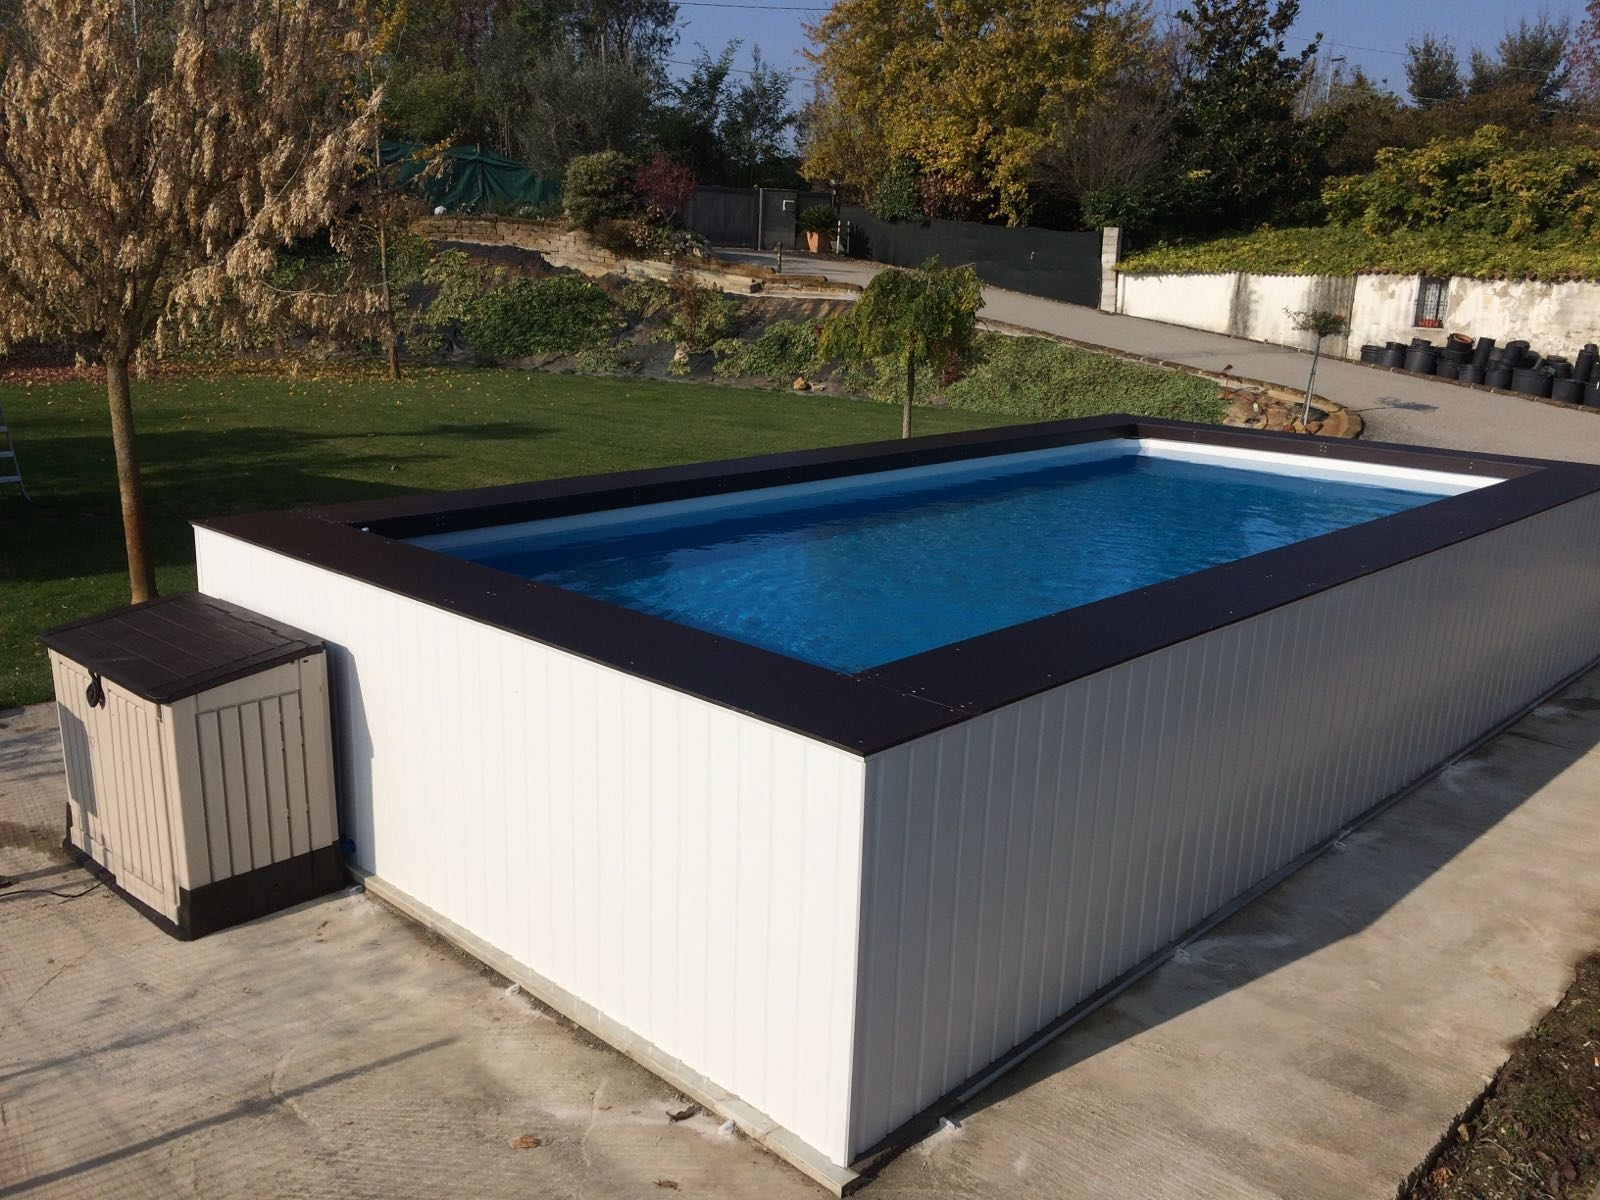 Rivestimenti piscine fuori terra intex cl28 regardsdefemmes - Piscine intex usate ...